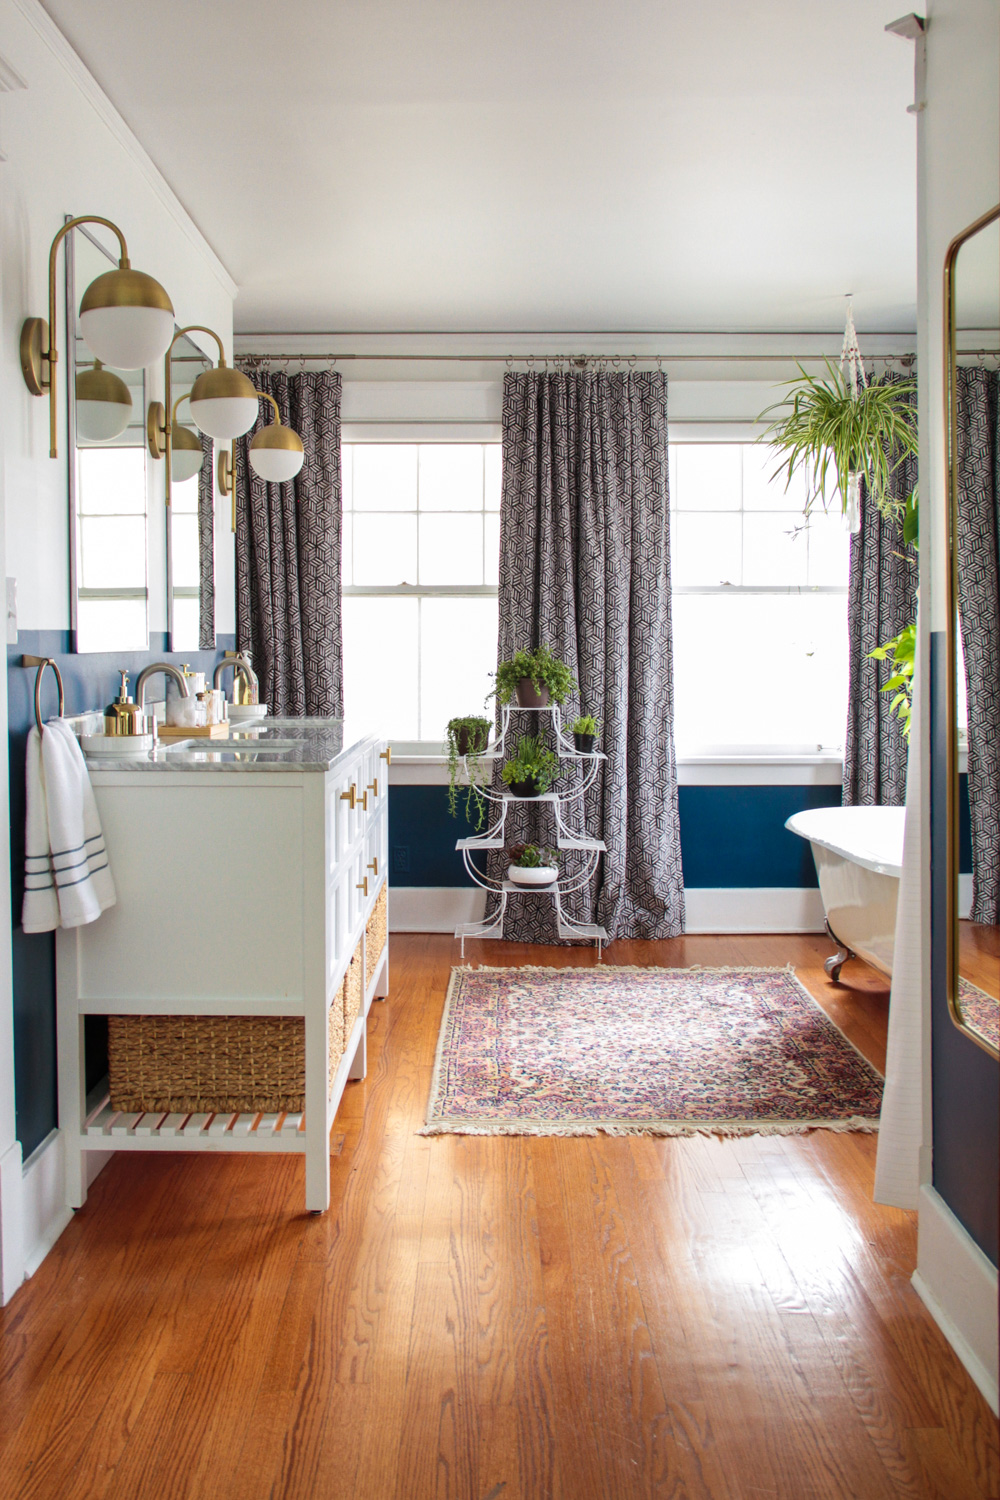 Bohemian Master Bathroom with Plants and Brass Sconces